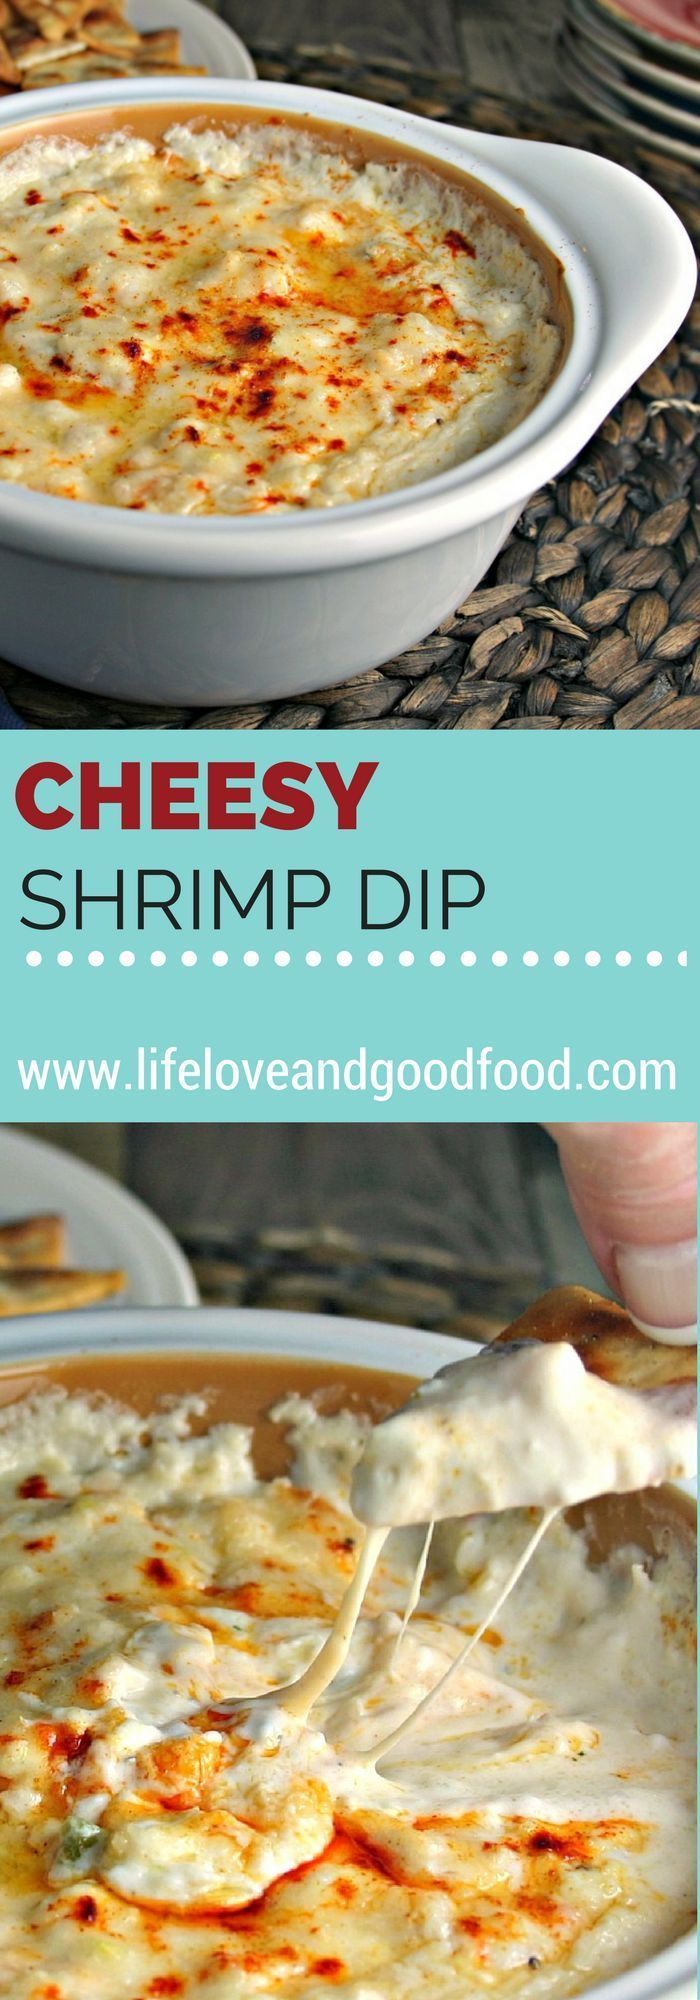 455 best Dips, Sauces, and Dressing for any Holiday images on ...